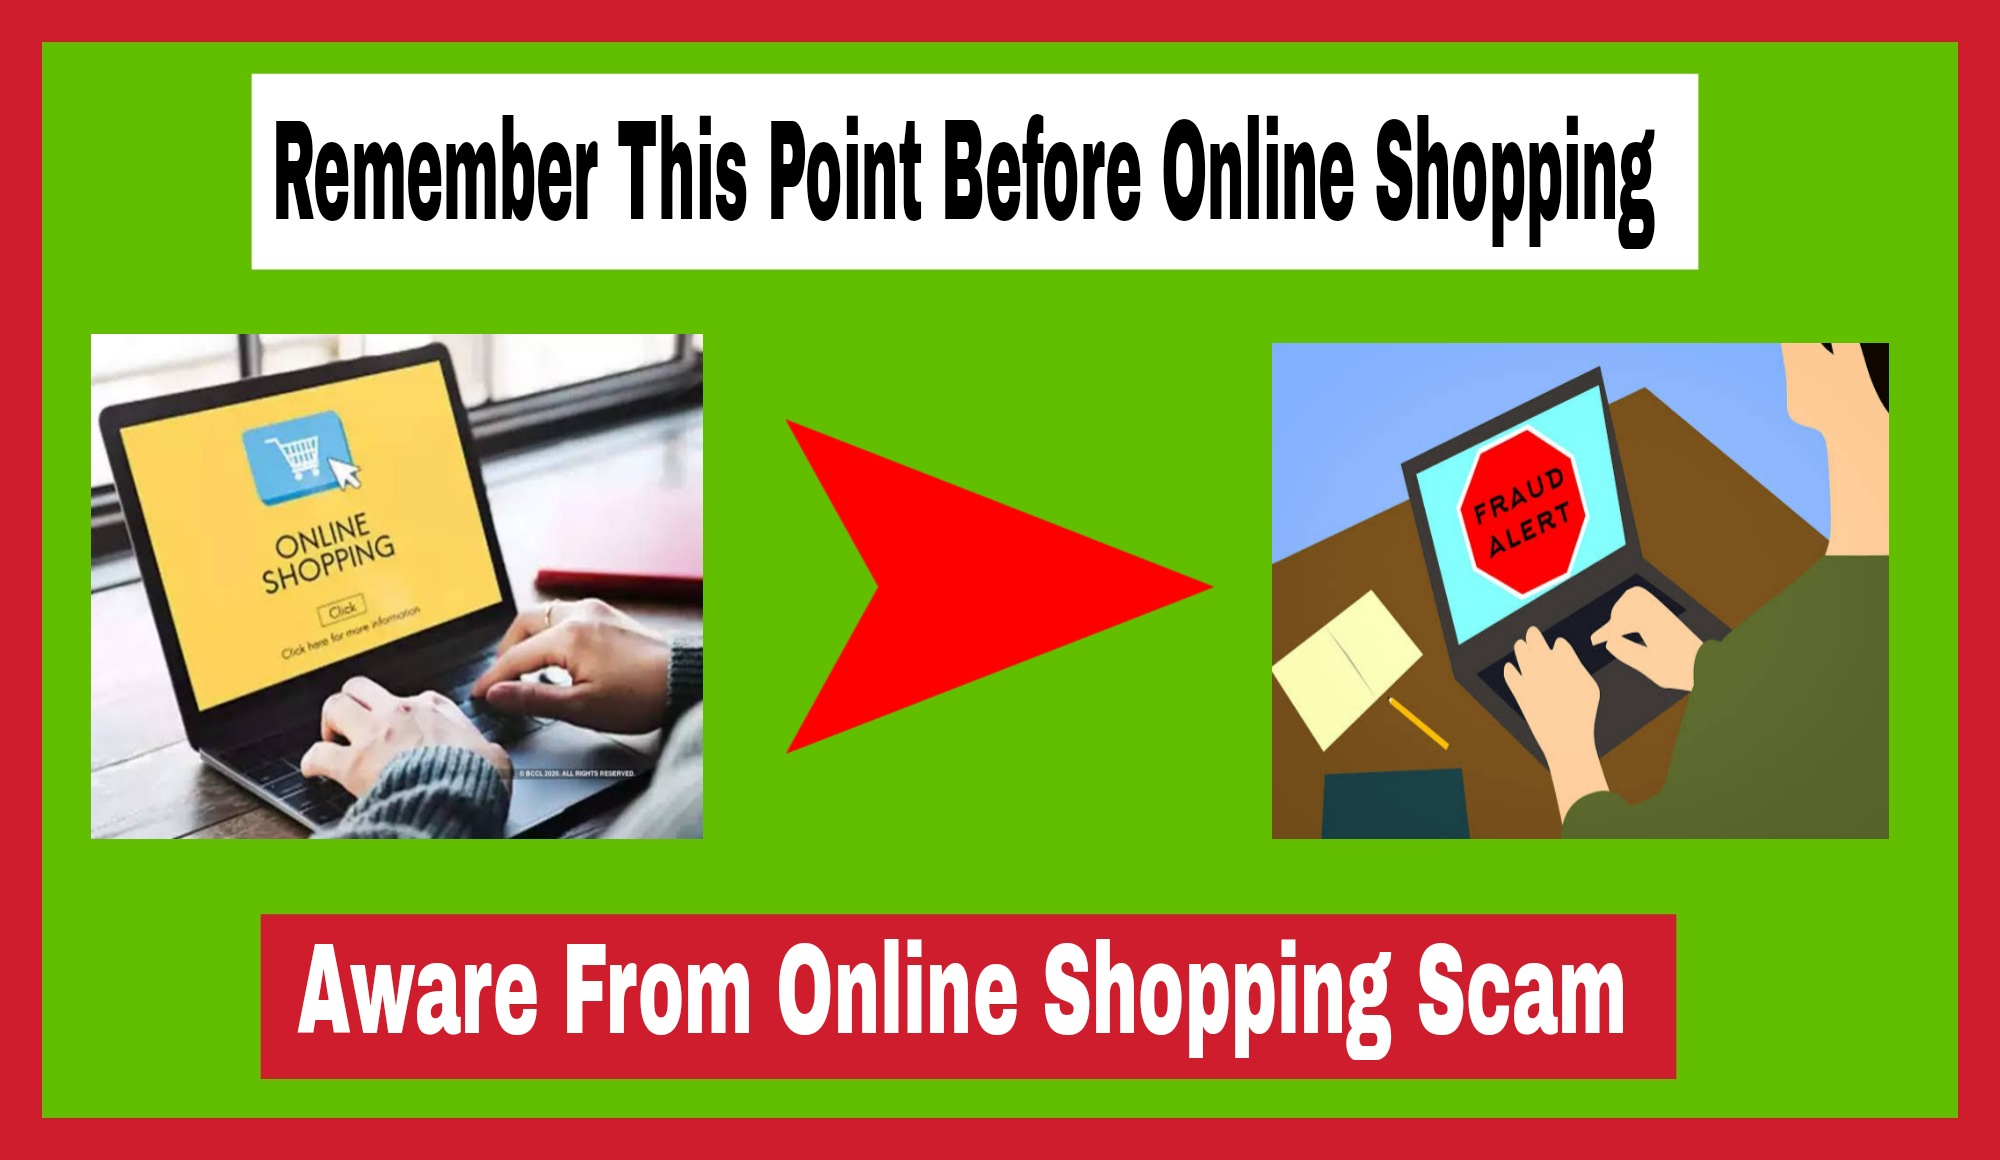 Remember This Point Before Online Shopping